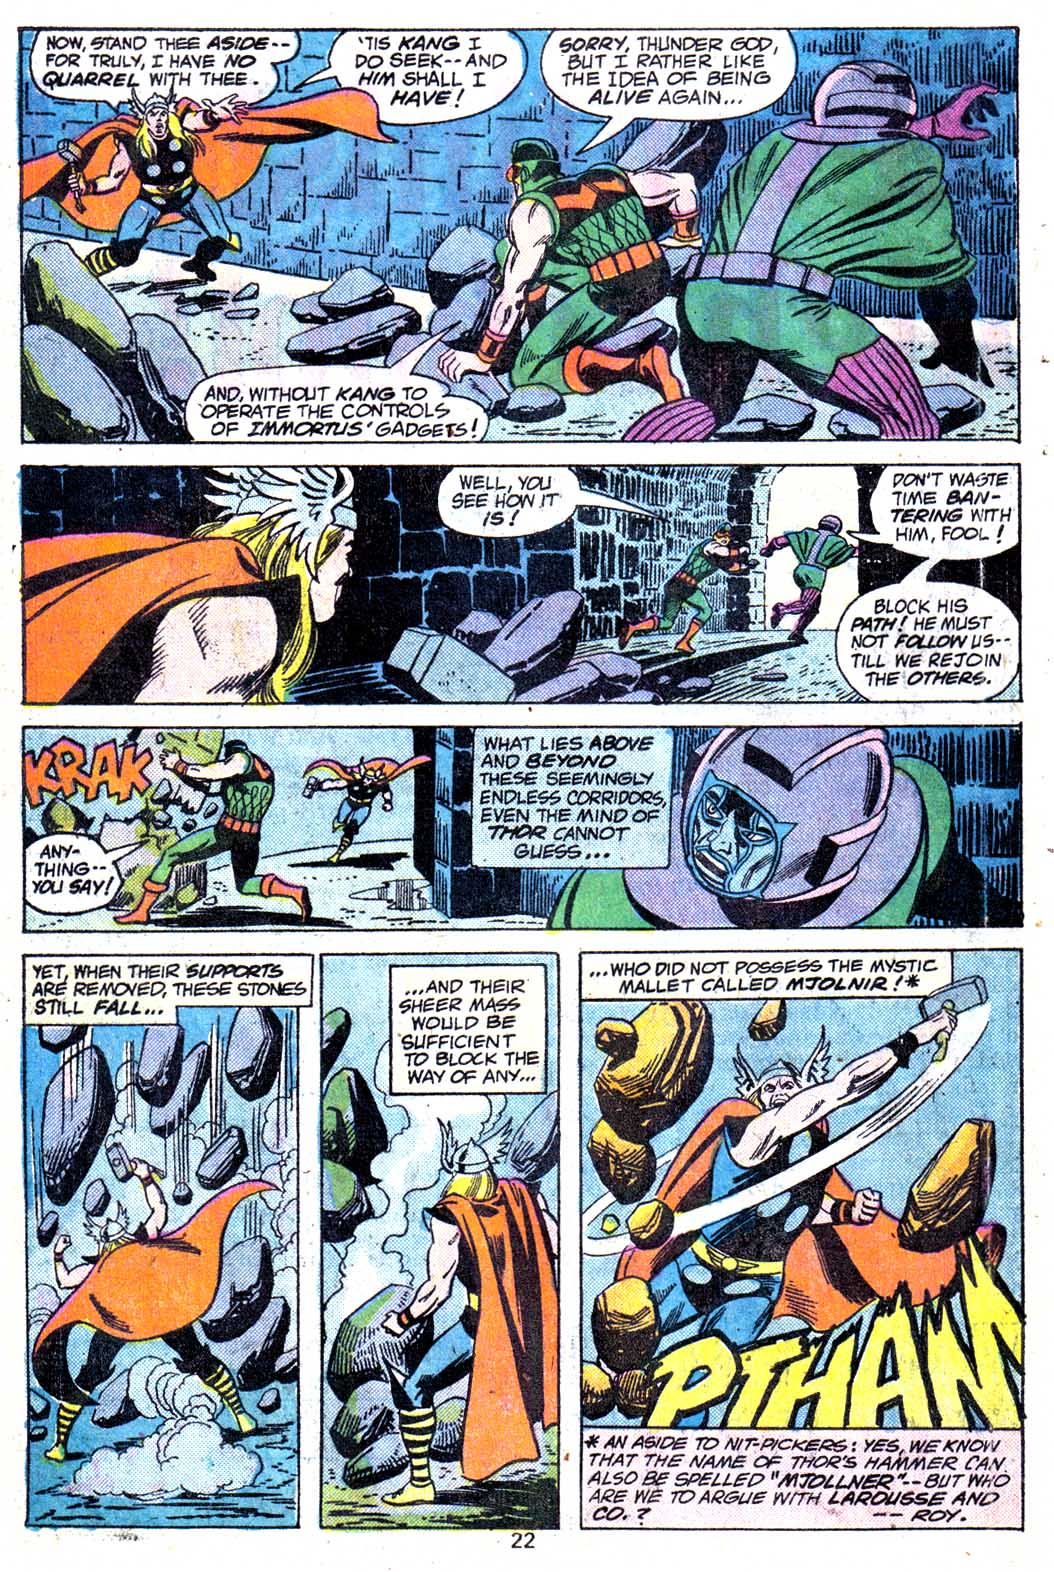 Giant-Size Avengers (1974) issue 3 - Page 24